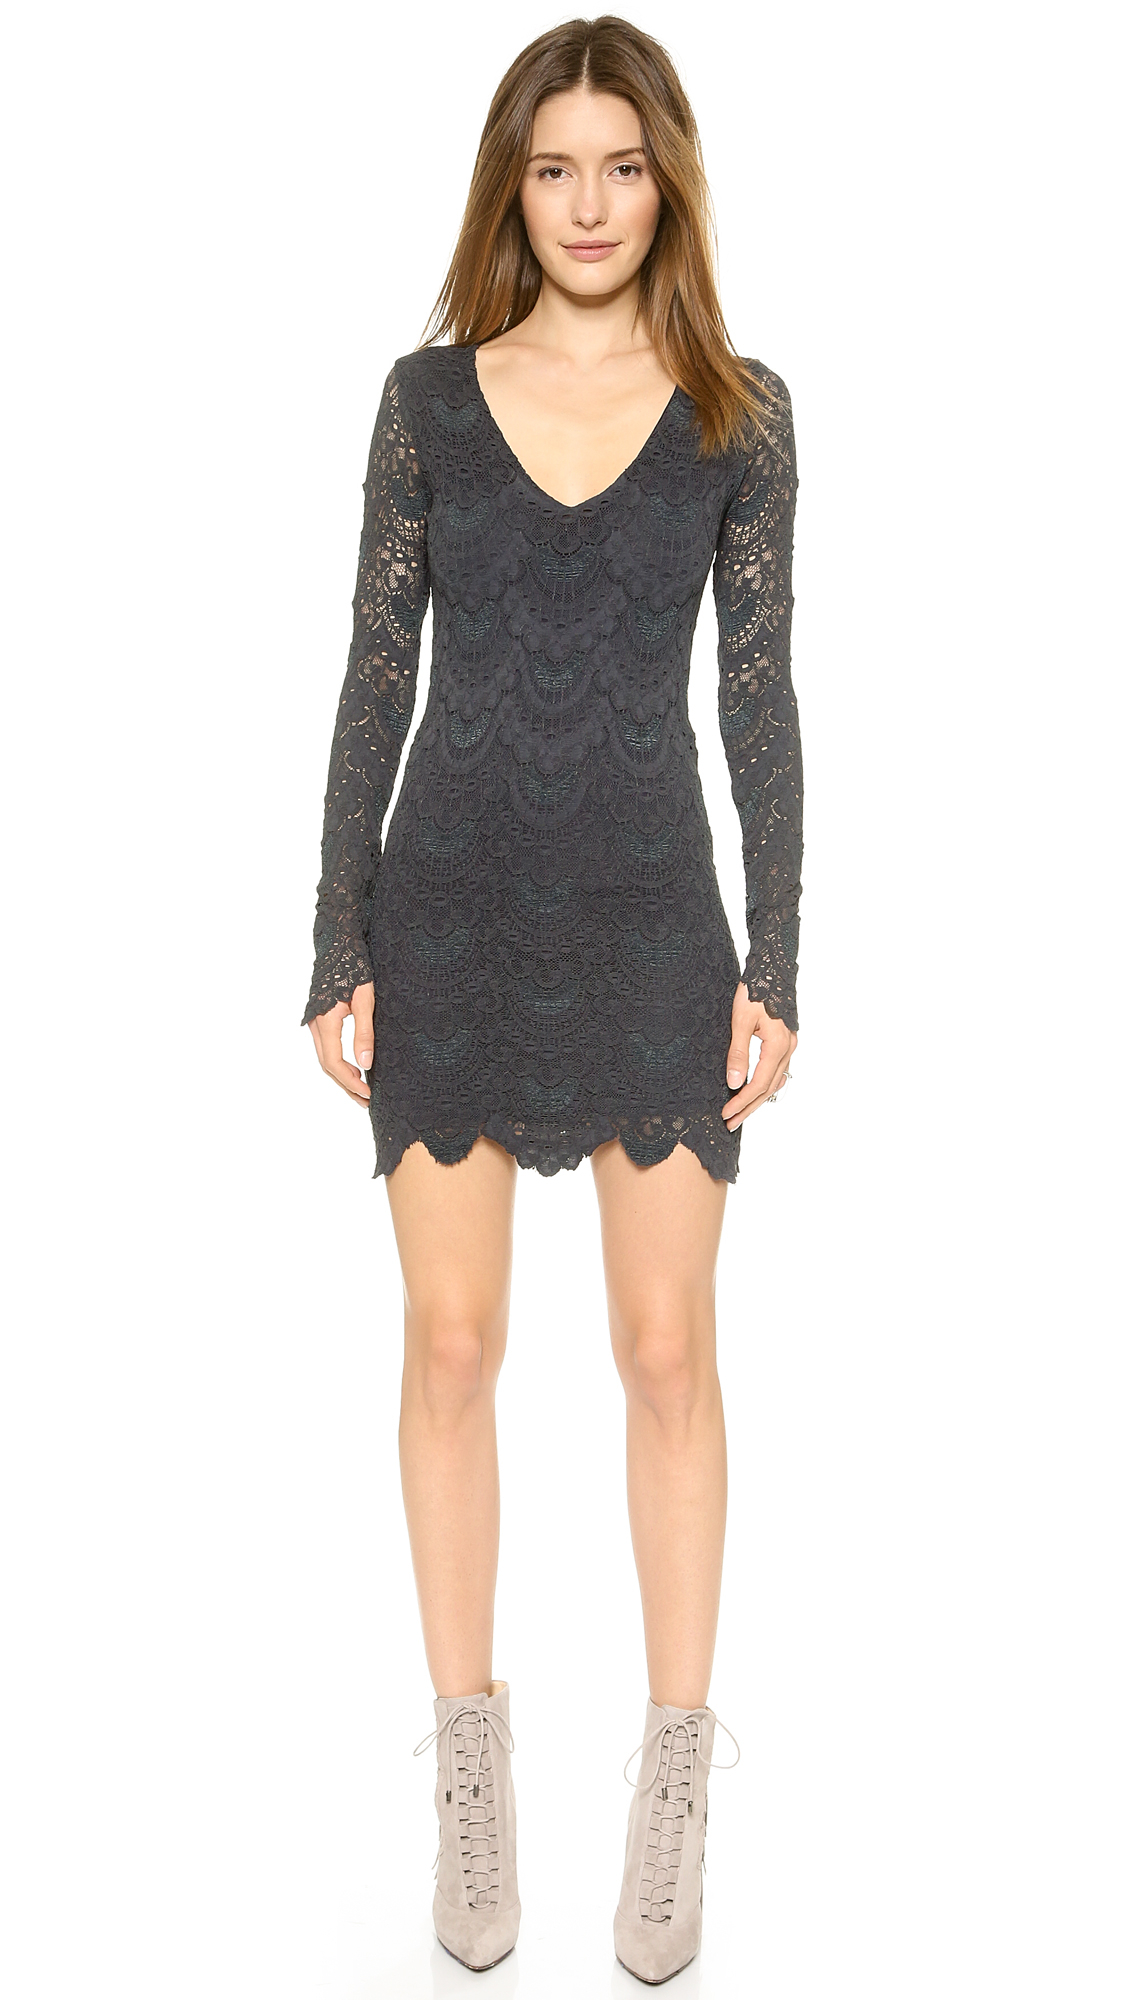 088be083d5 Nightcap Spanish Lace Long Sleeve Deep V Dress - Ivory in Gray - Lyst